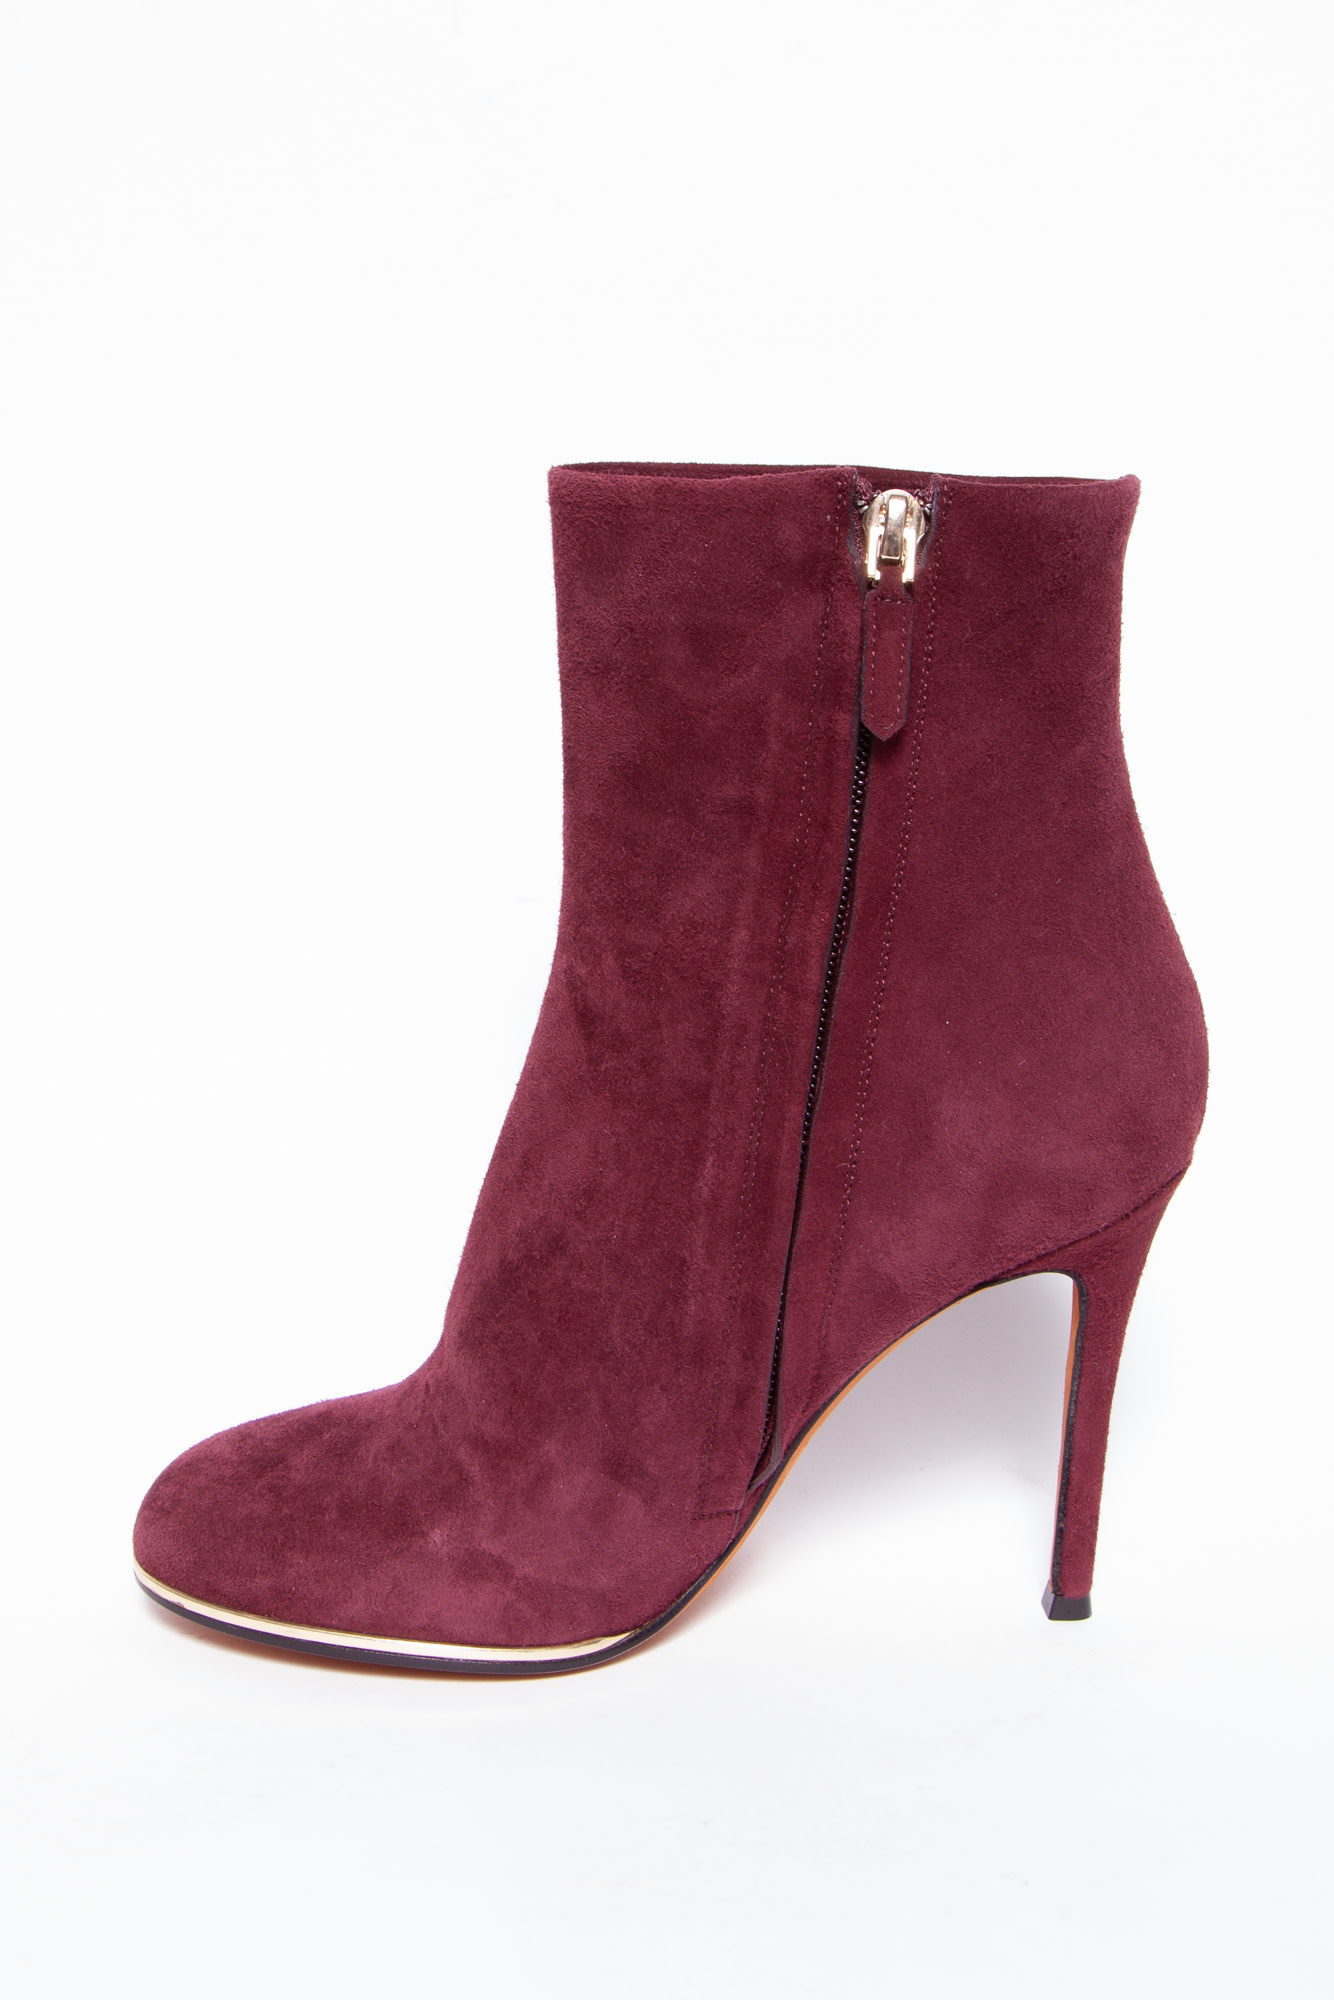 Givenchy BURGUNDY SUEDE ANKLE BOOTS - NEW